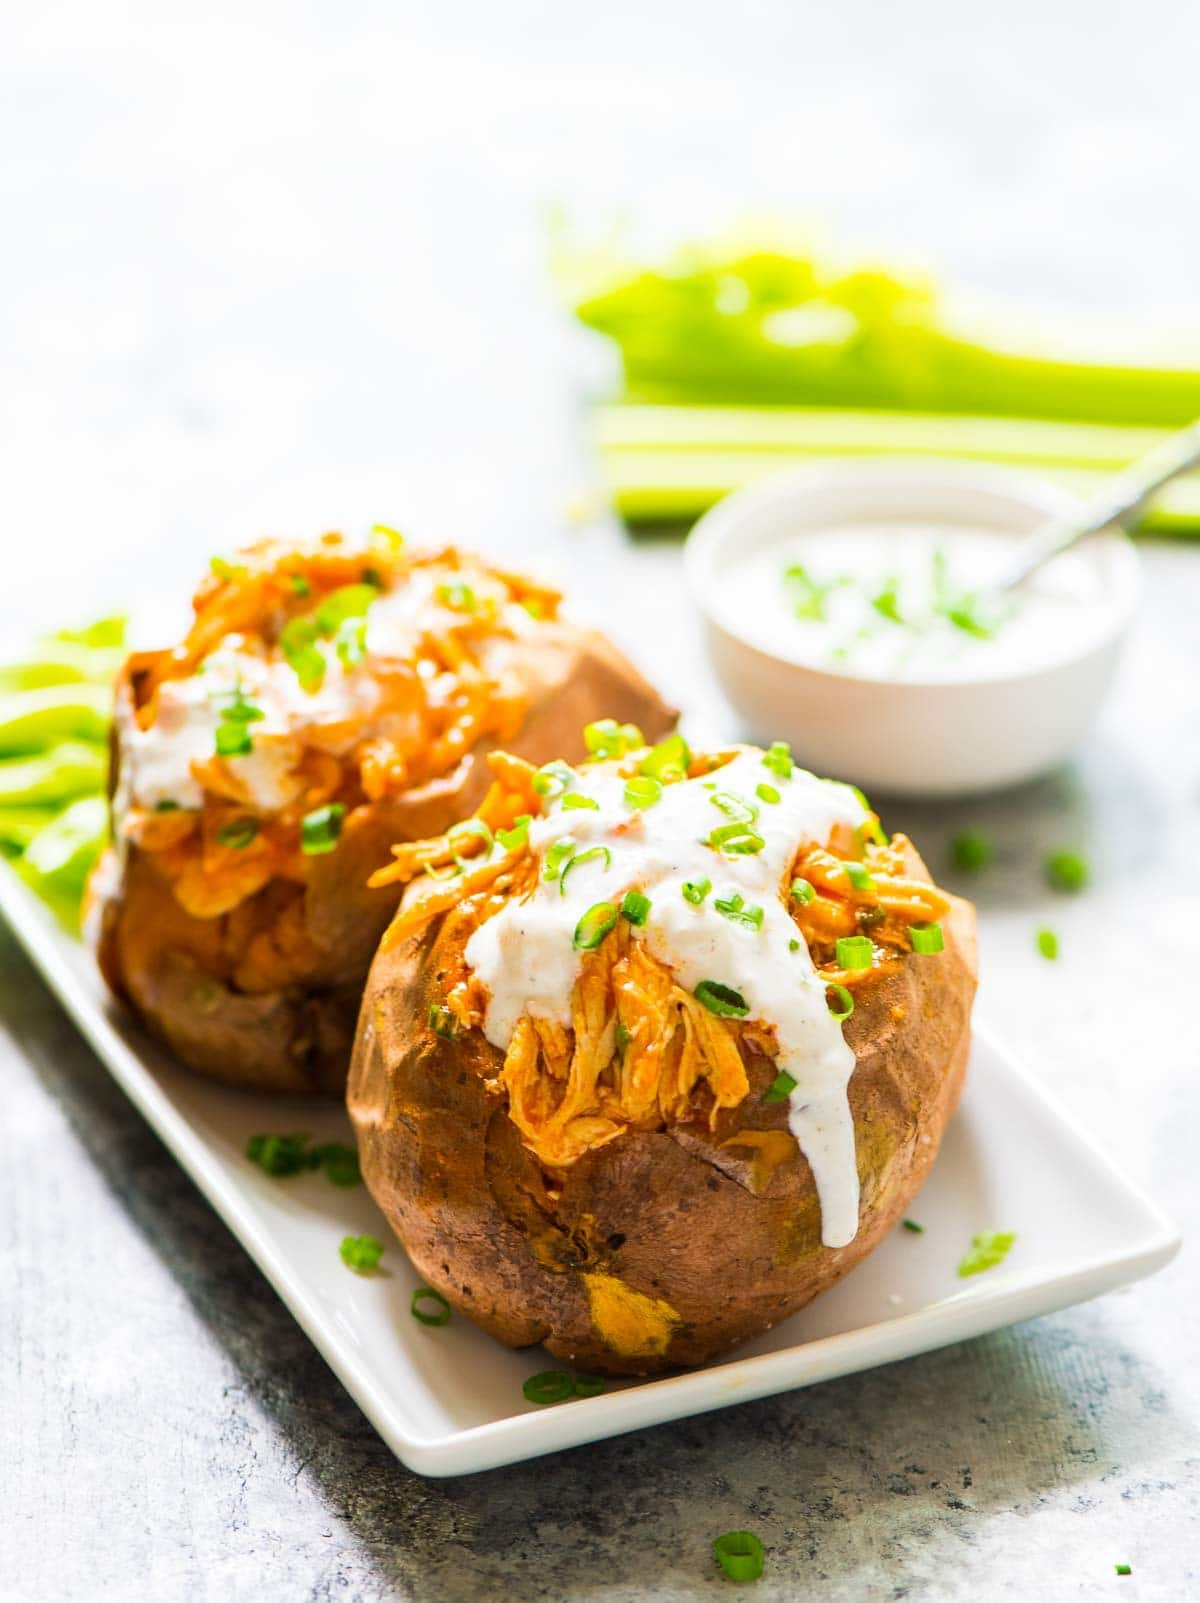 Slow Cooker Buffalo Chicken. The combo of spicy chicken with sweet potatoes is SO GOOD. Easy, healthy crock pot recipe that's perfect for busy weeknights or to feed a crowd. @wellplated